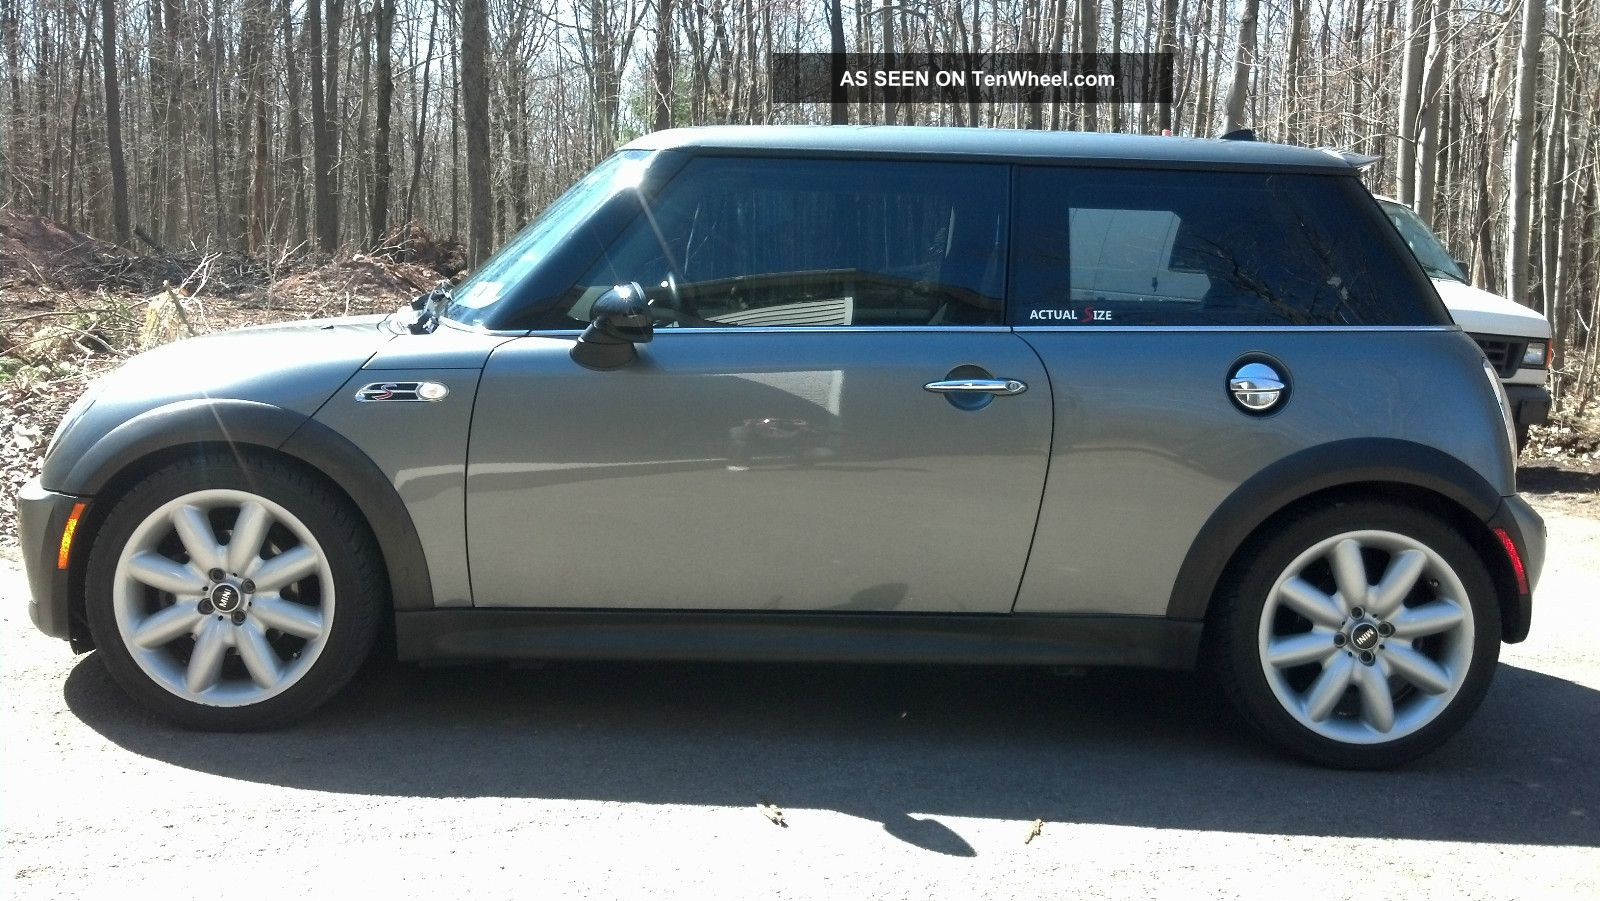 2004 mini cooper s hatchback 2 door 1 6l. Black Bedroom Furniture Sets. Home Design Ideas